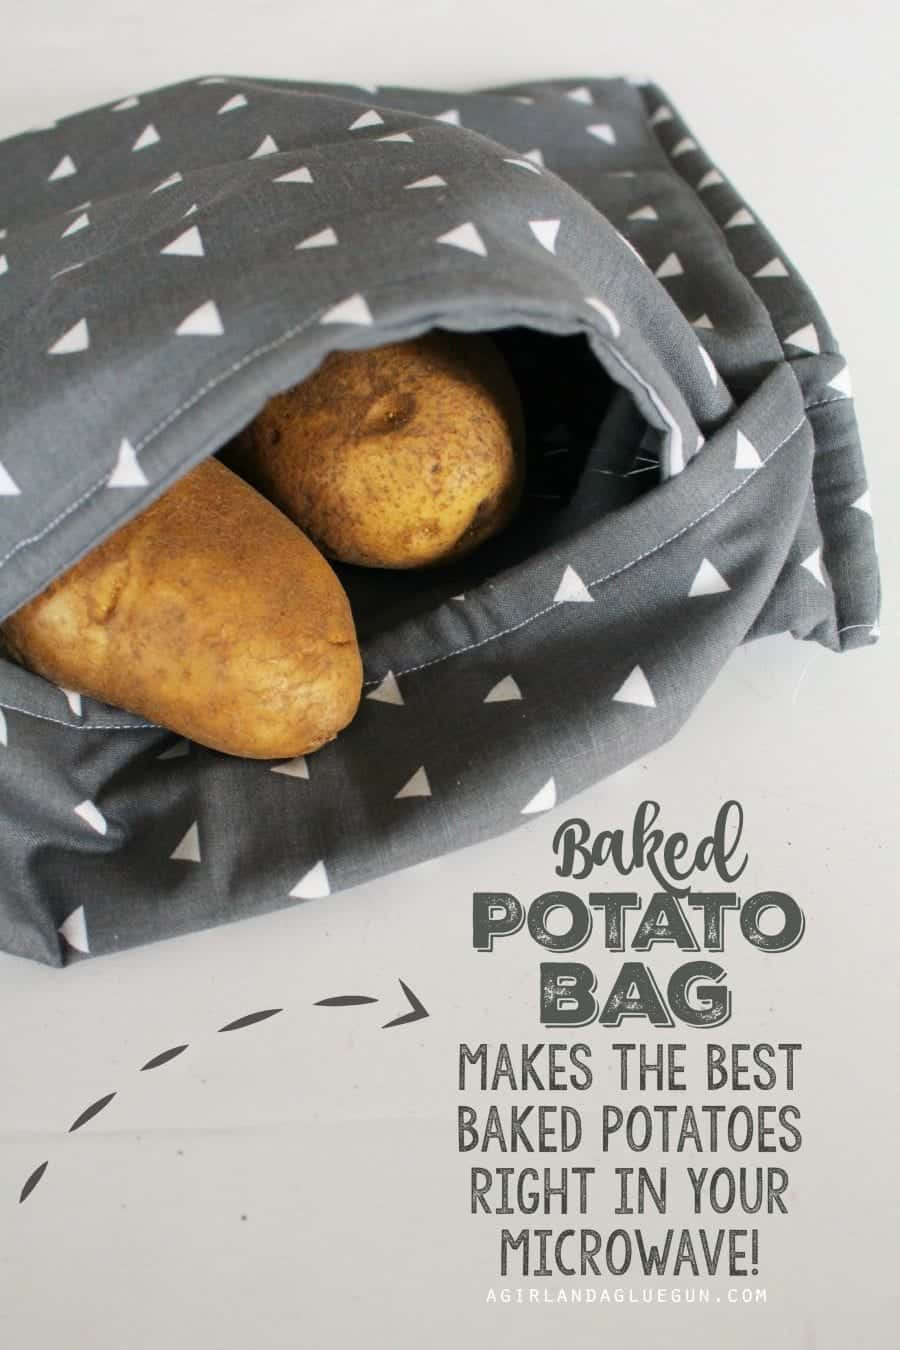 baked-potato-bag-make-the-softest-and-yummiest-baked-potatoes-right-in-your-microwave-900x1350